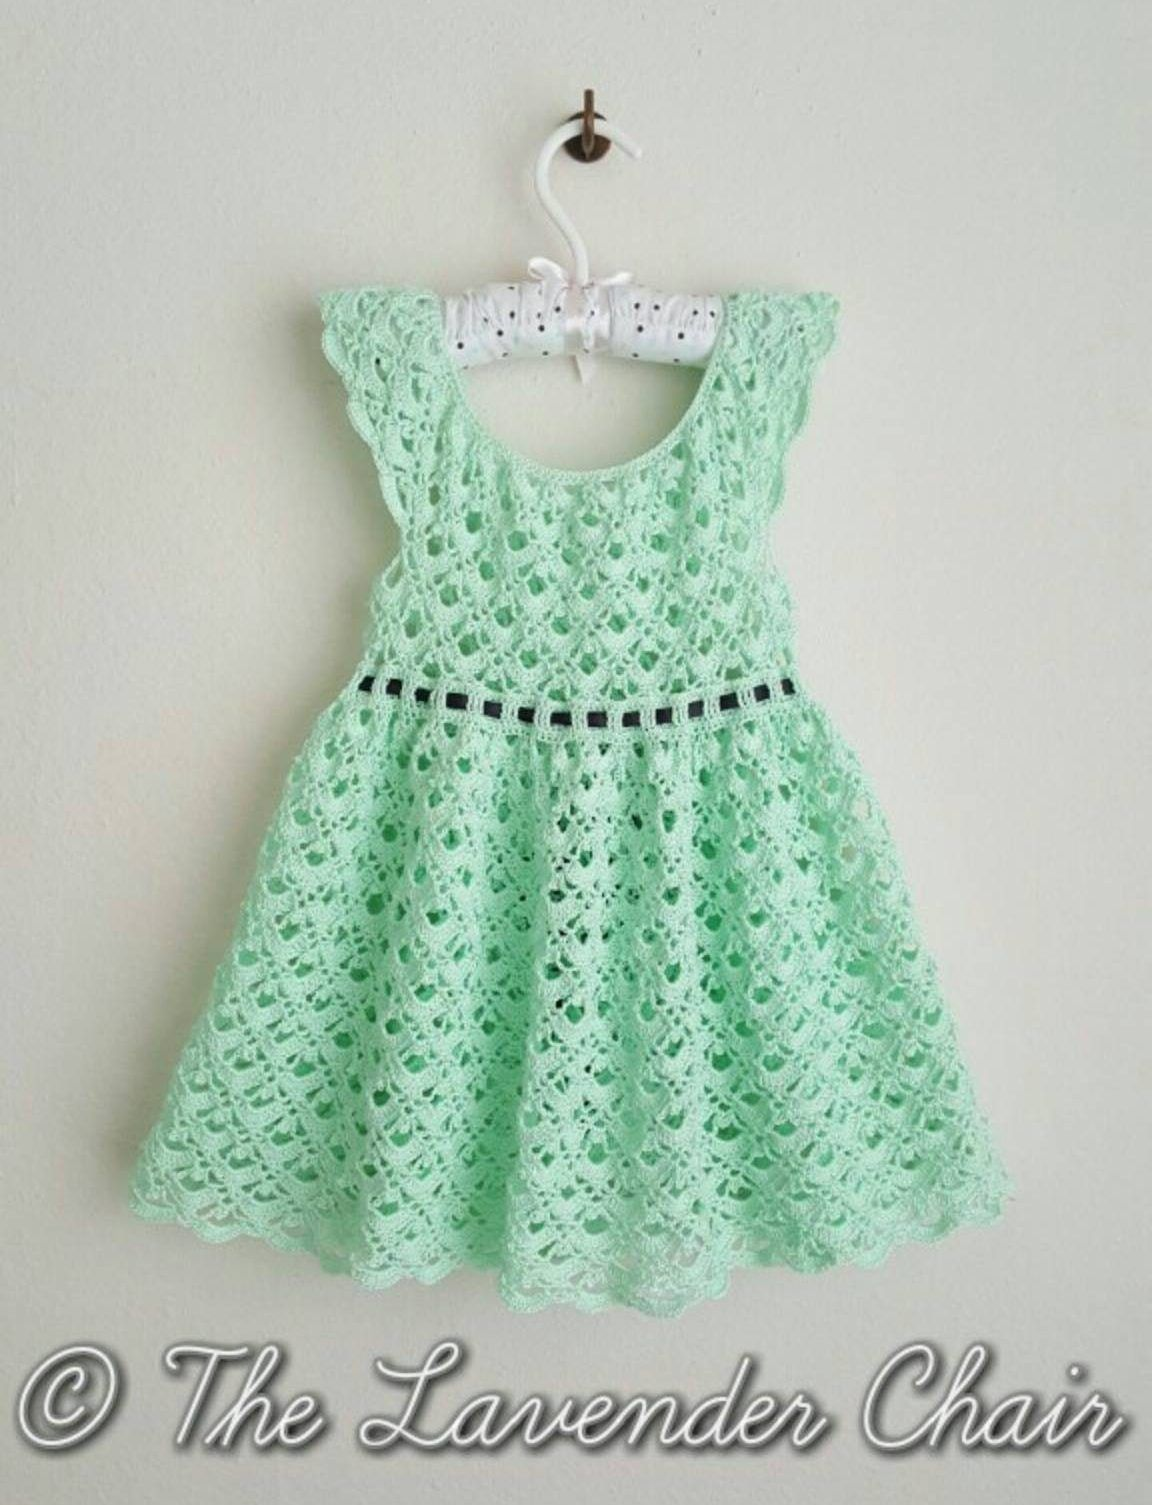 How To Crochet Toddler Dress Free Pattern Winding Road Crochet Crochet Toddler Dress Crochet Baby Clothes Crochet Baby Dress Pattern